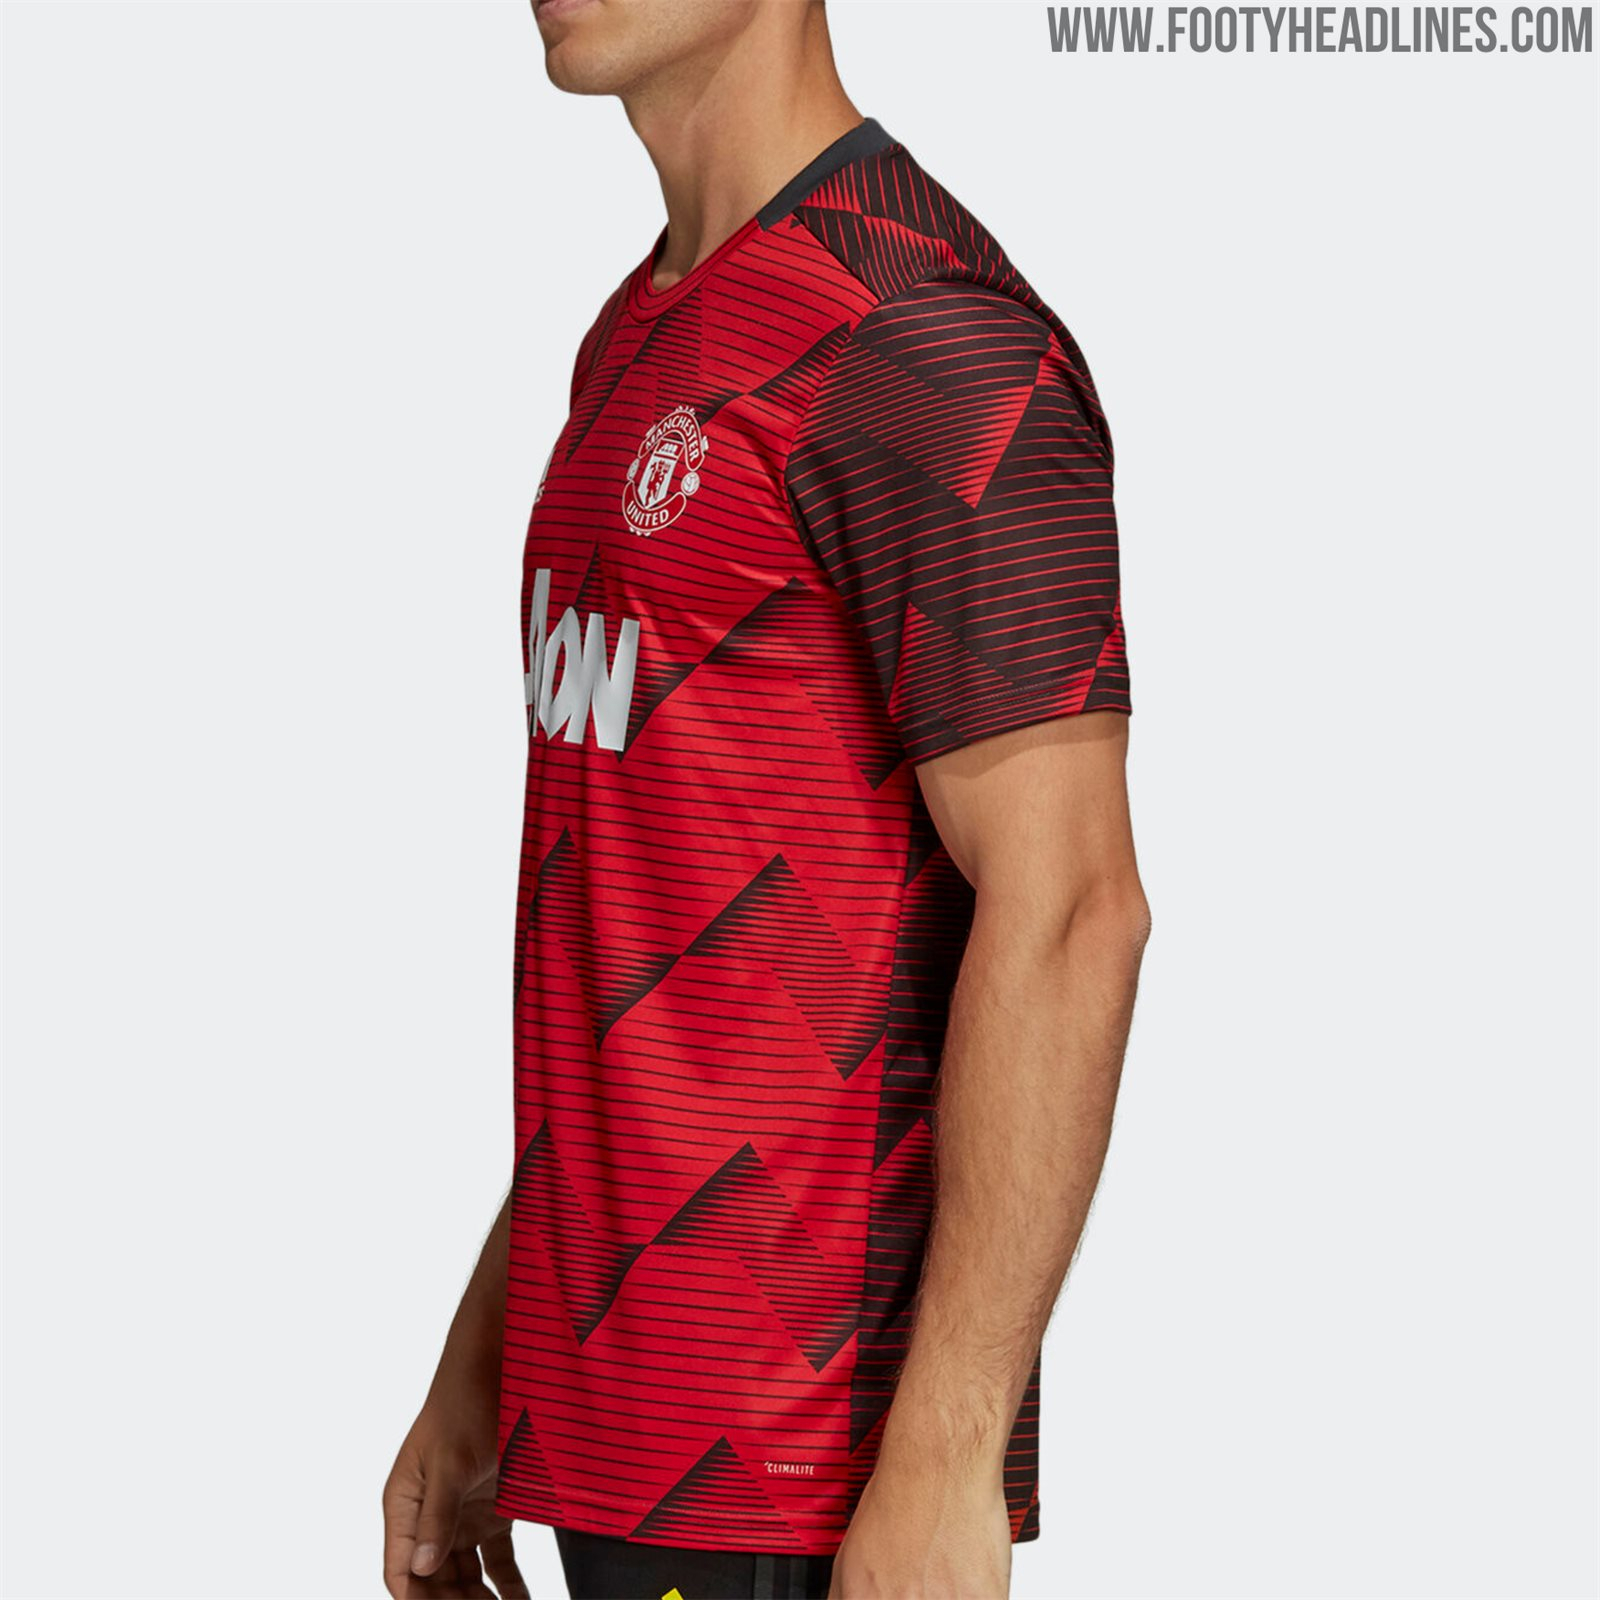 Manchester United 2020 Pre-Match Kit Released & Training